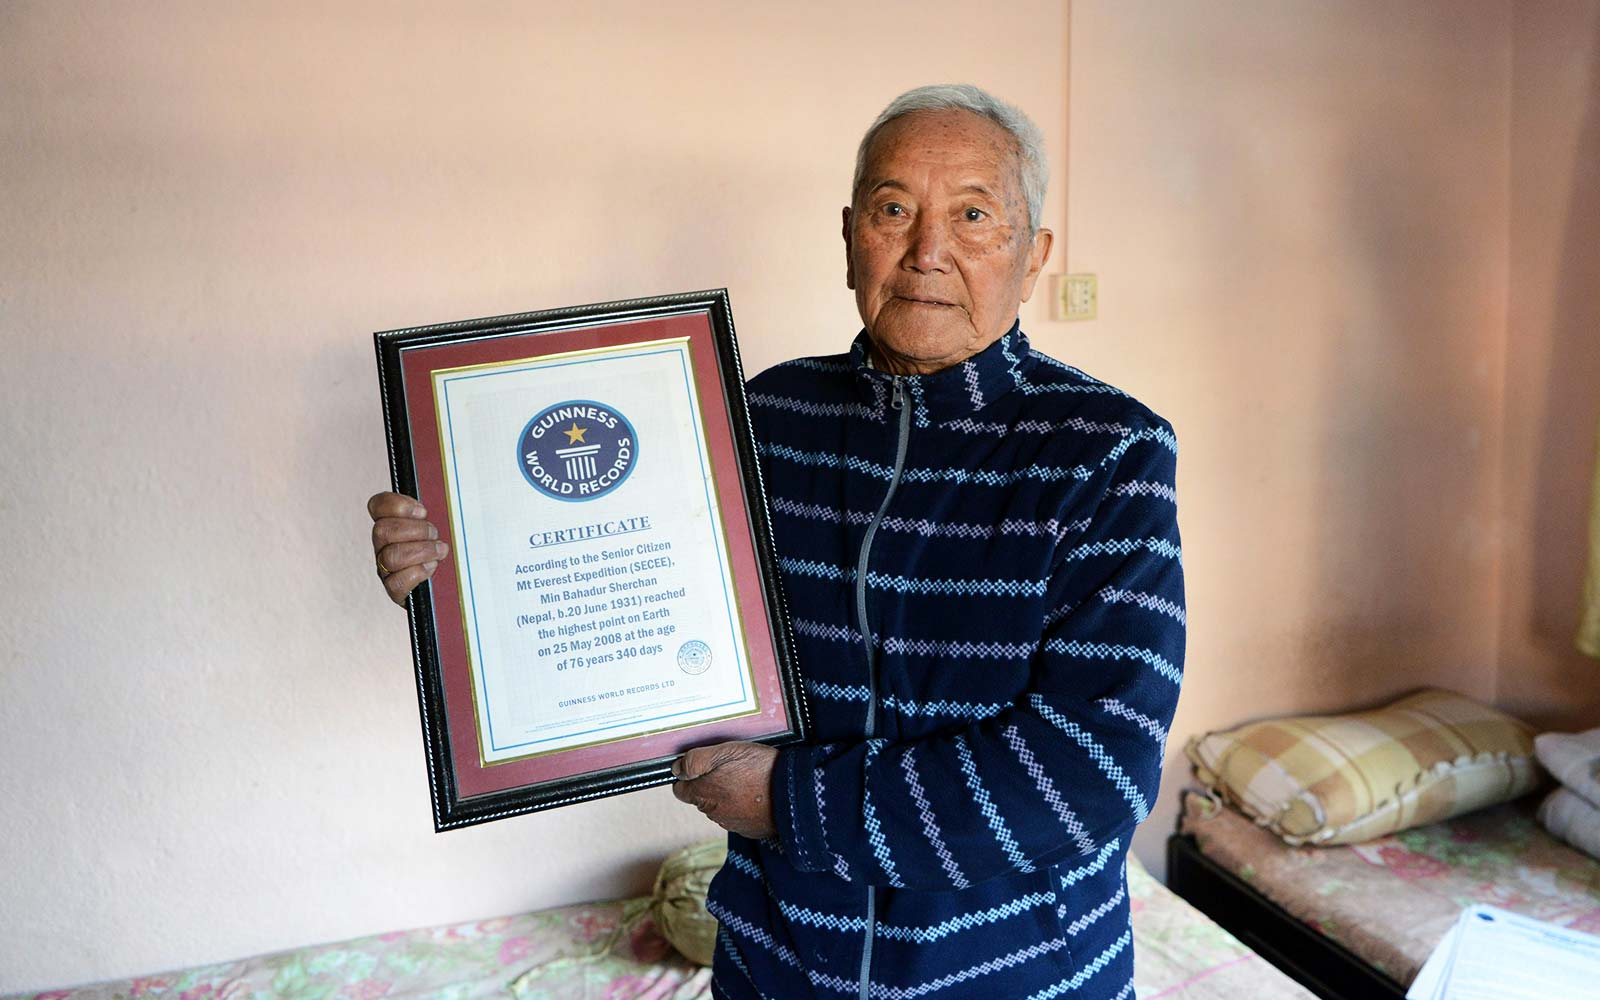 85-year-old Plans to Become Oldest Person to Climb Mount Everest — Again